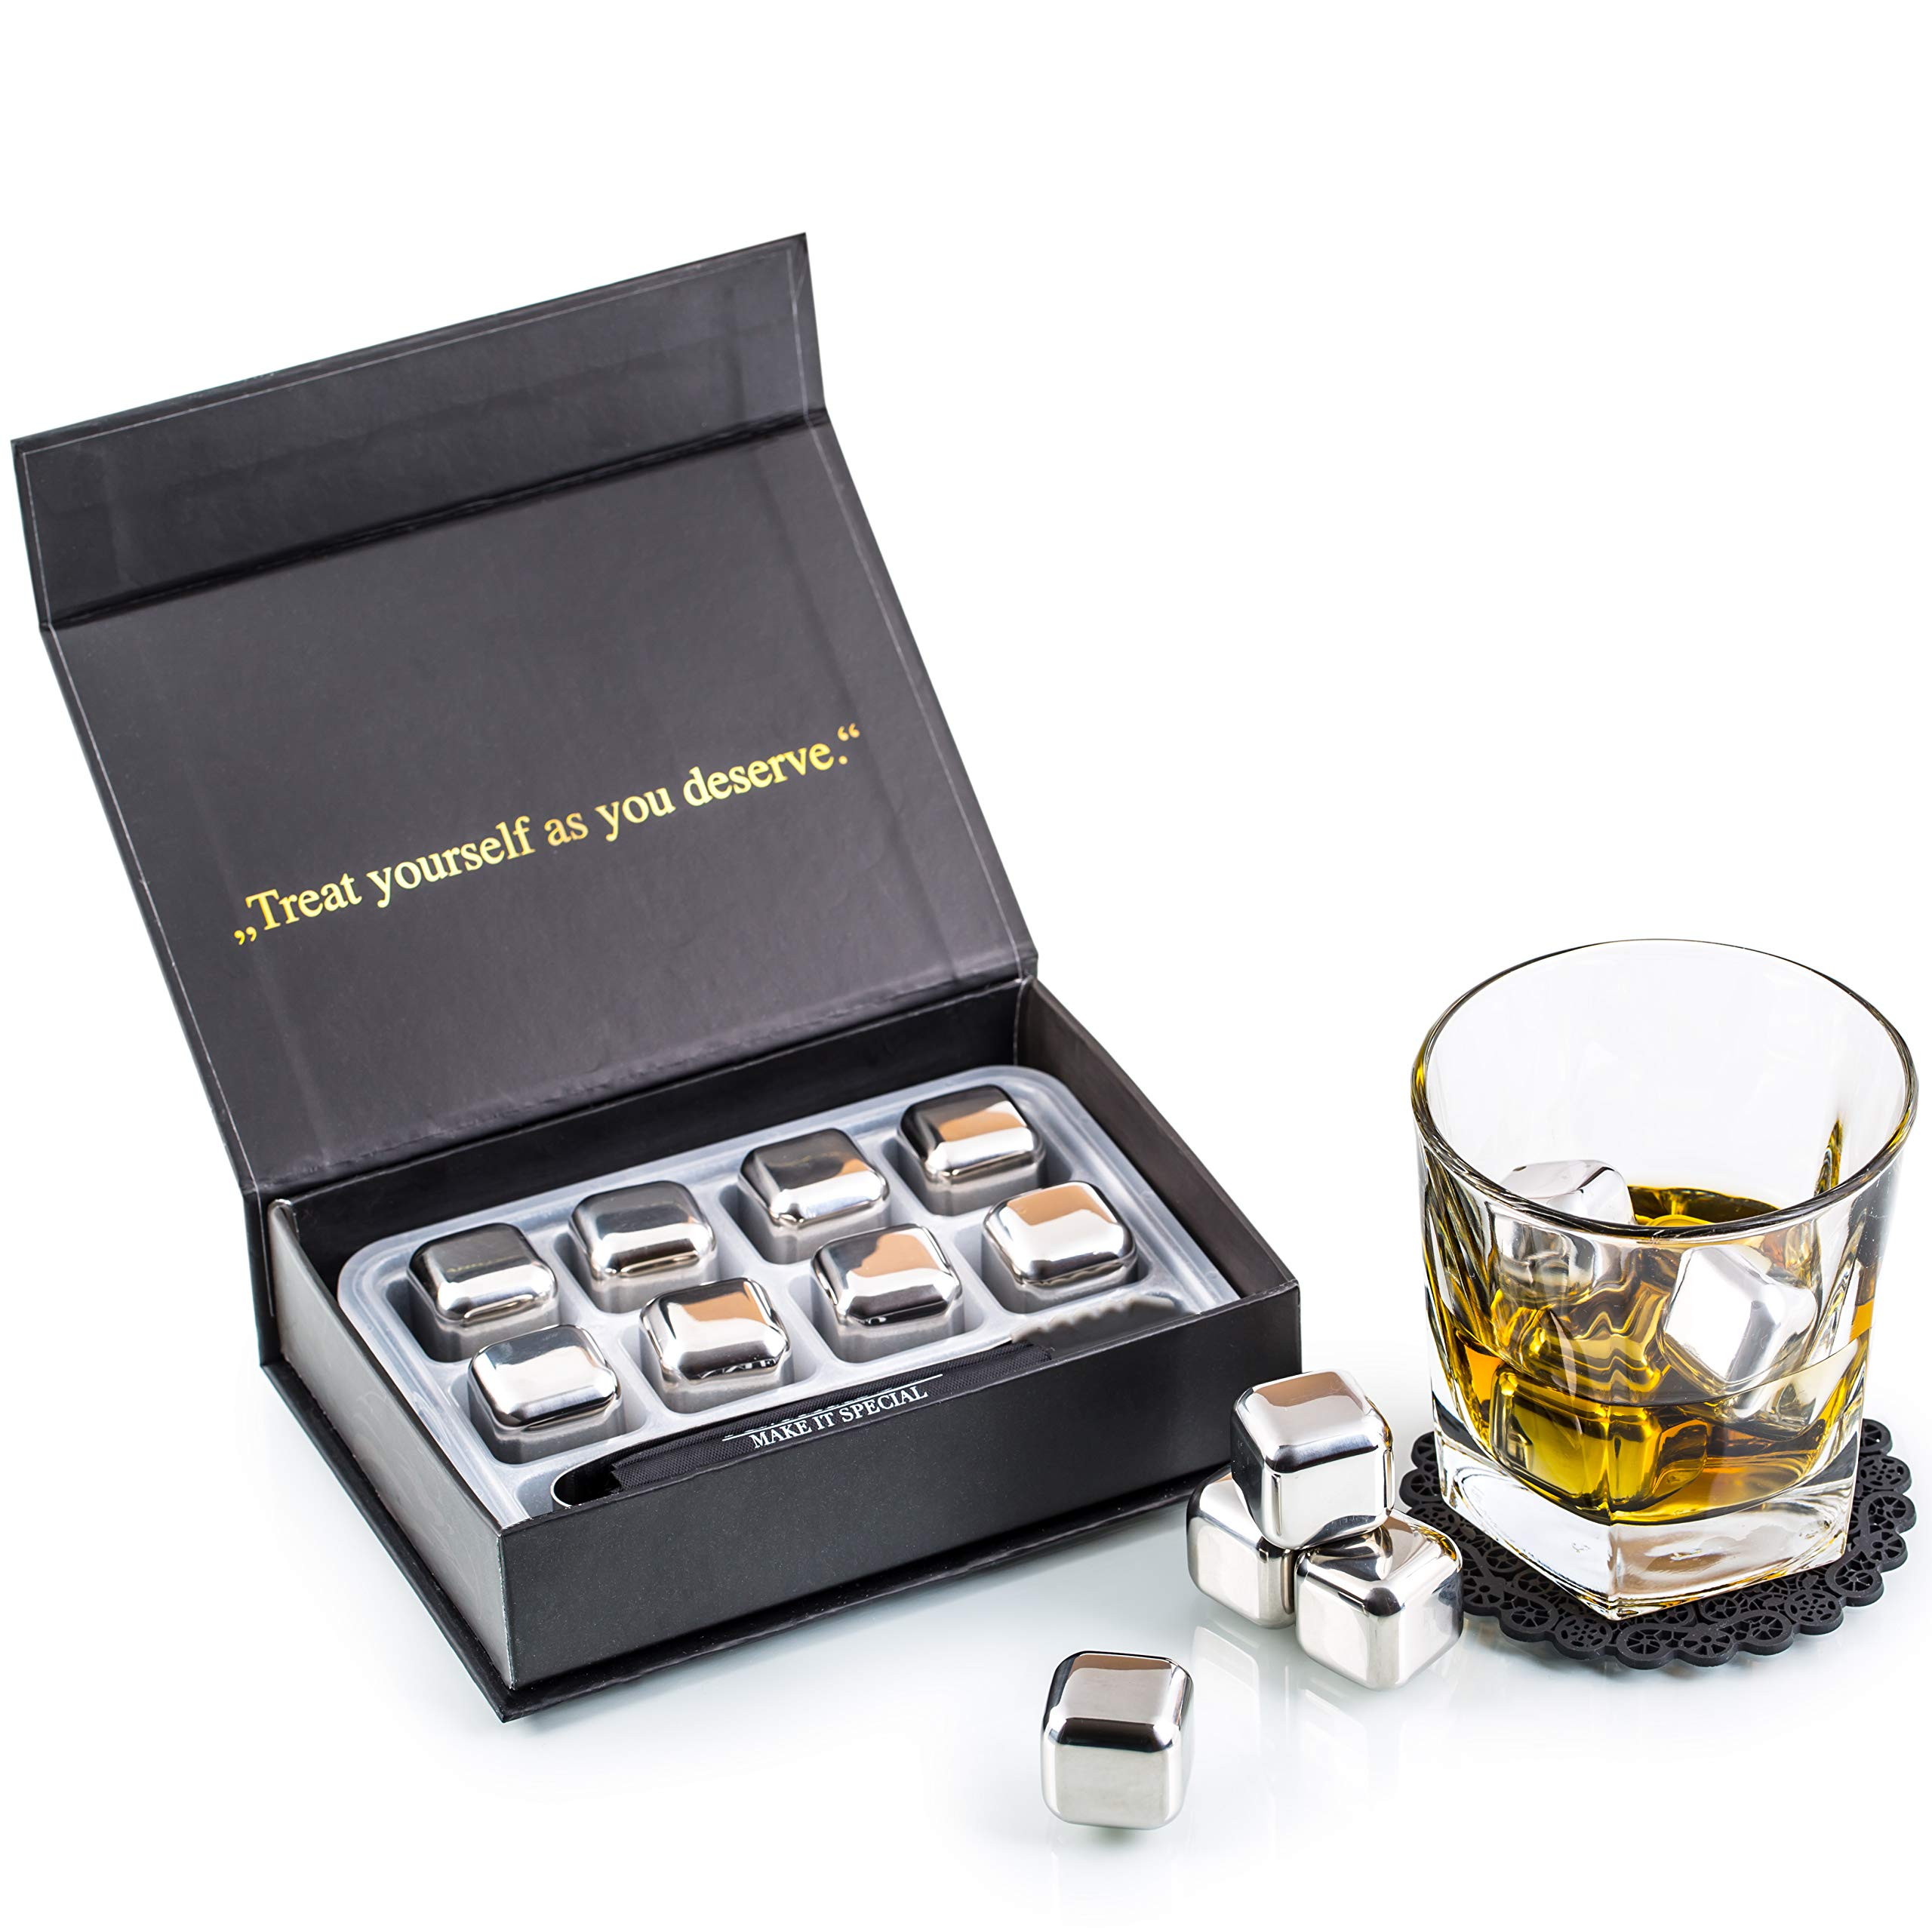 Exclusivo Whisky Piedras Set de Regalo de Acero Inoxidable - Alta Tecnología de Refrigeración - Whisky